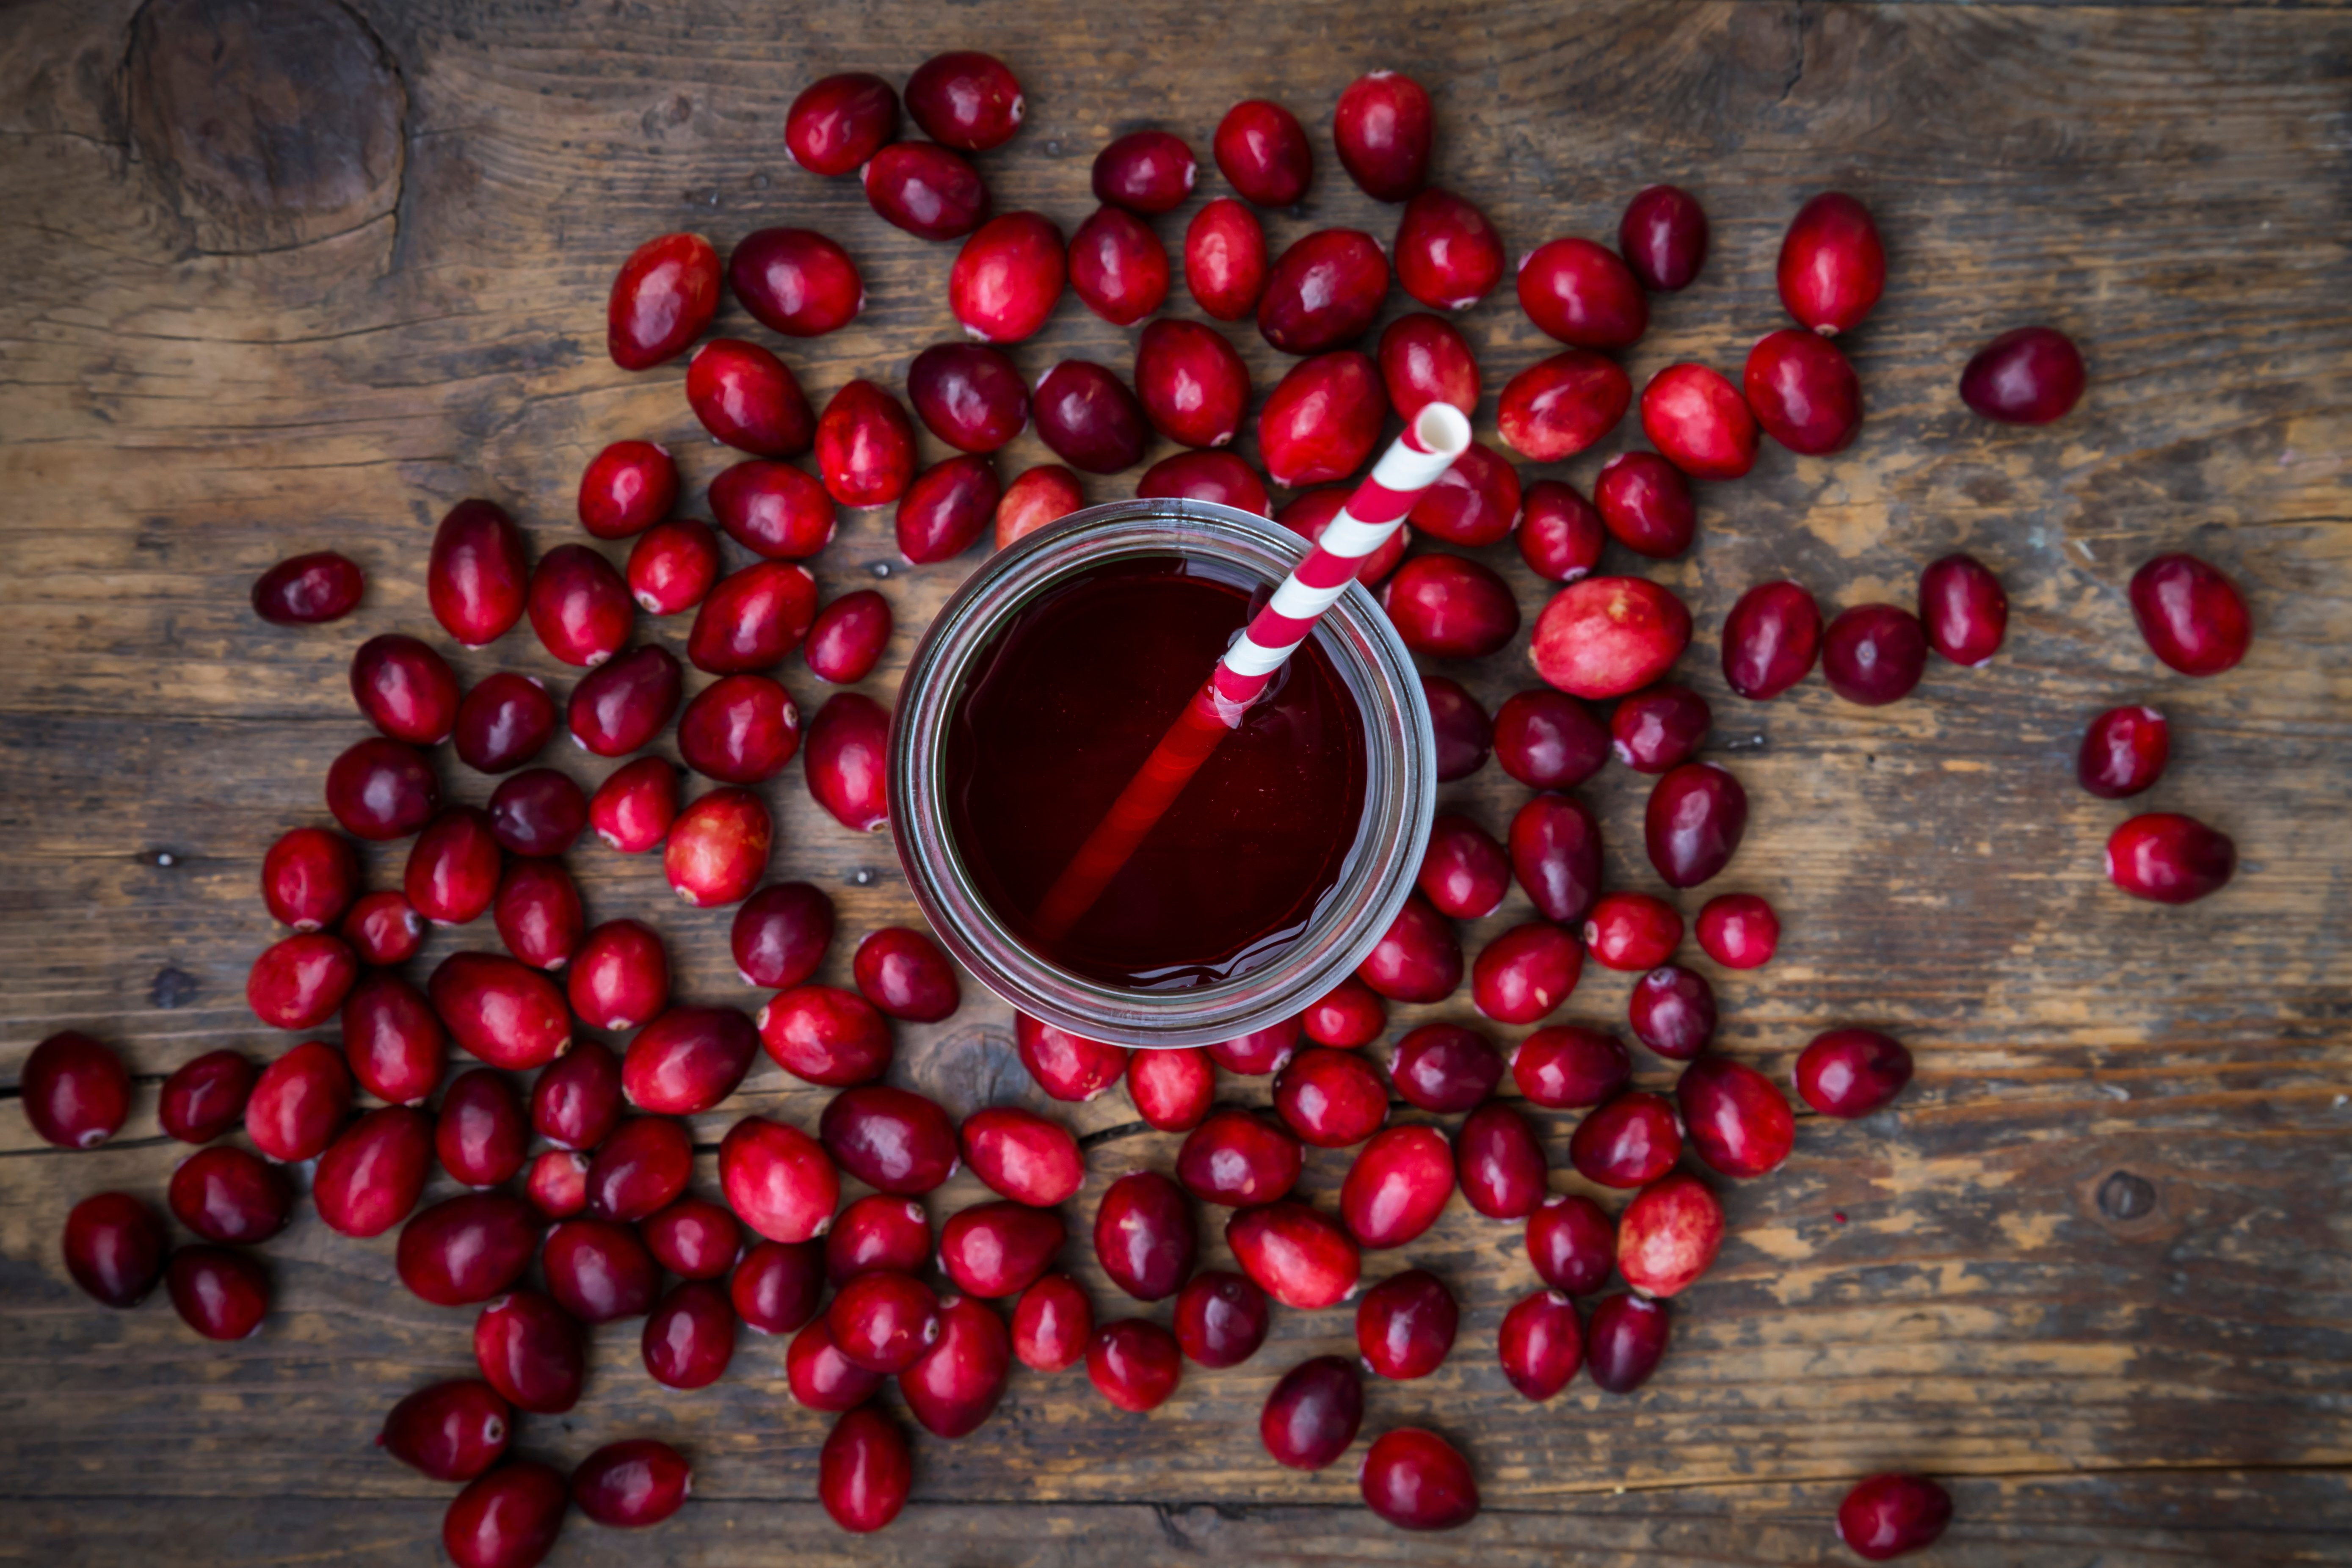 Cranberries and cranberry juice